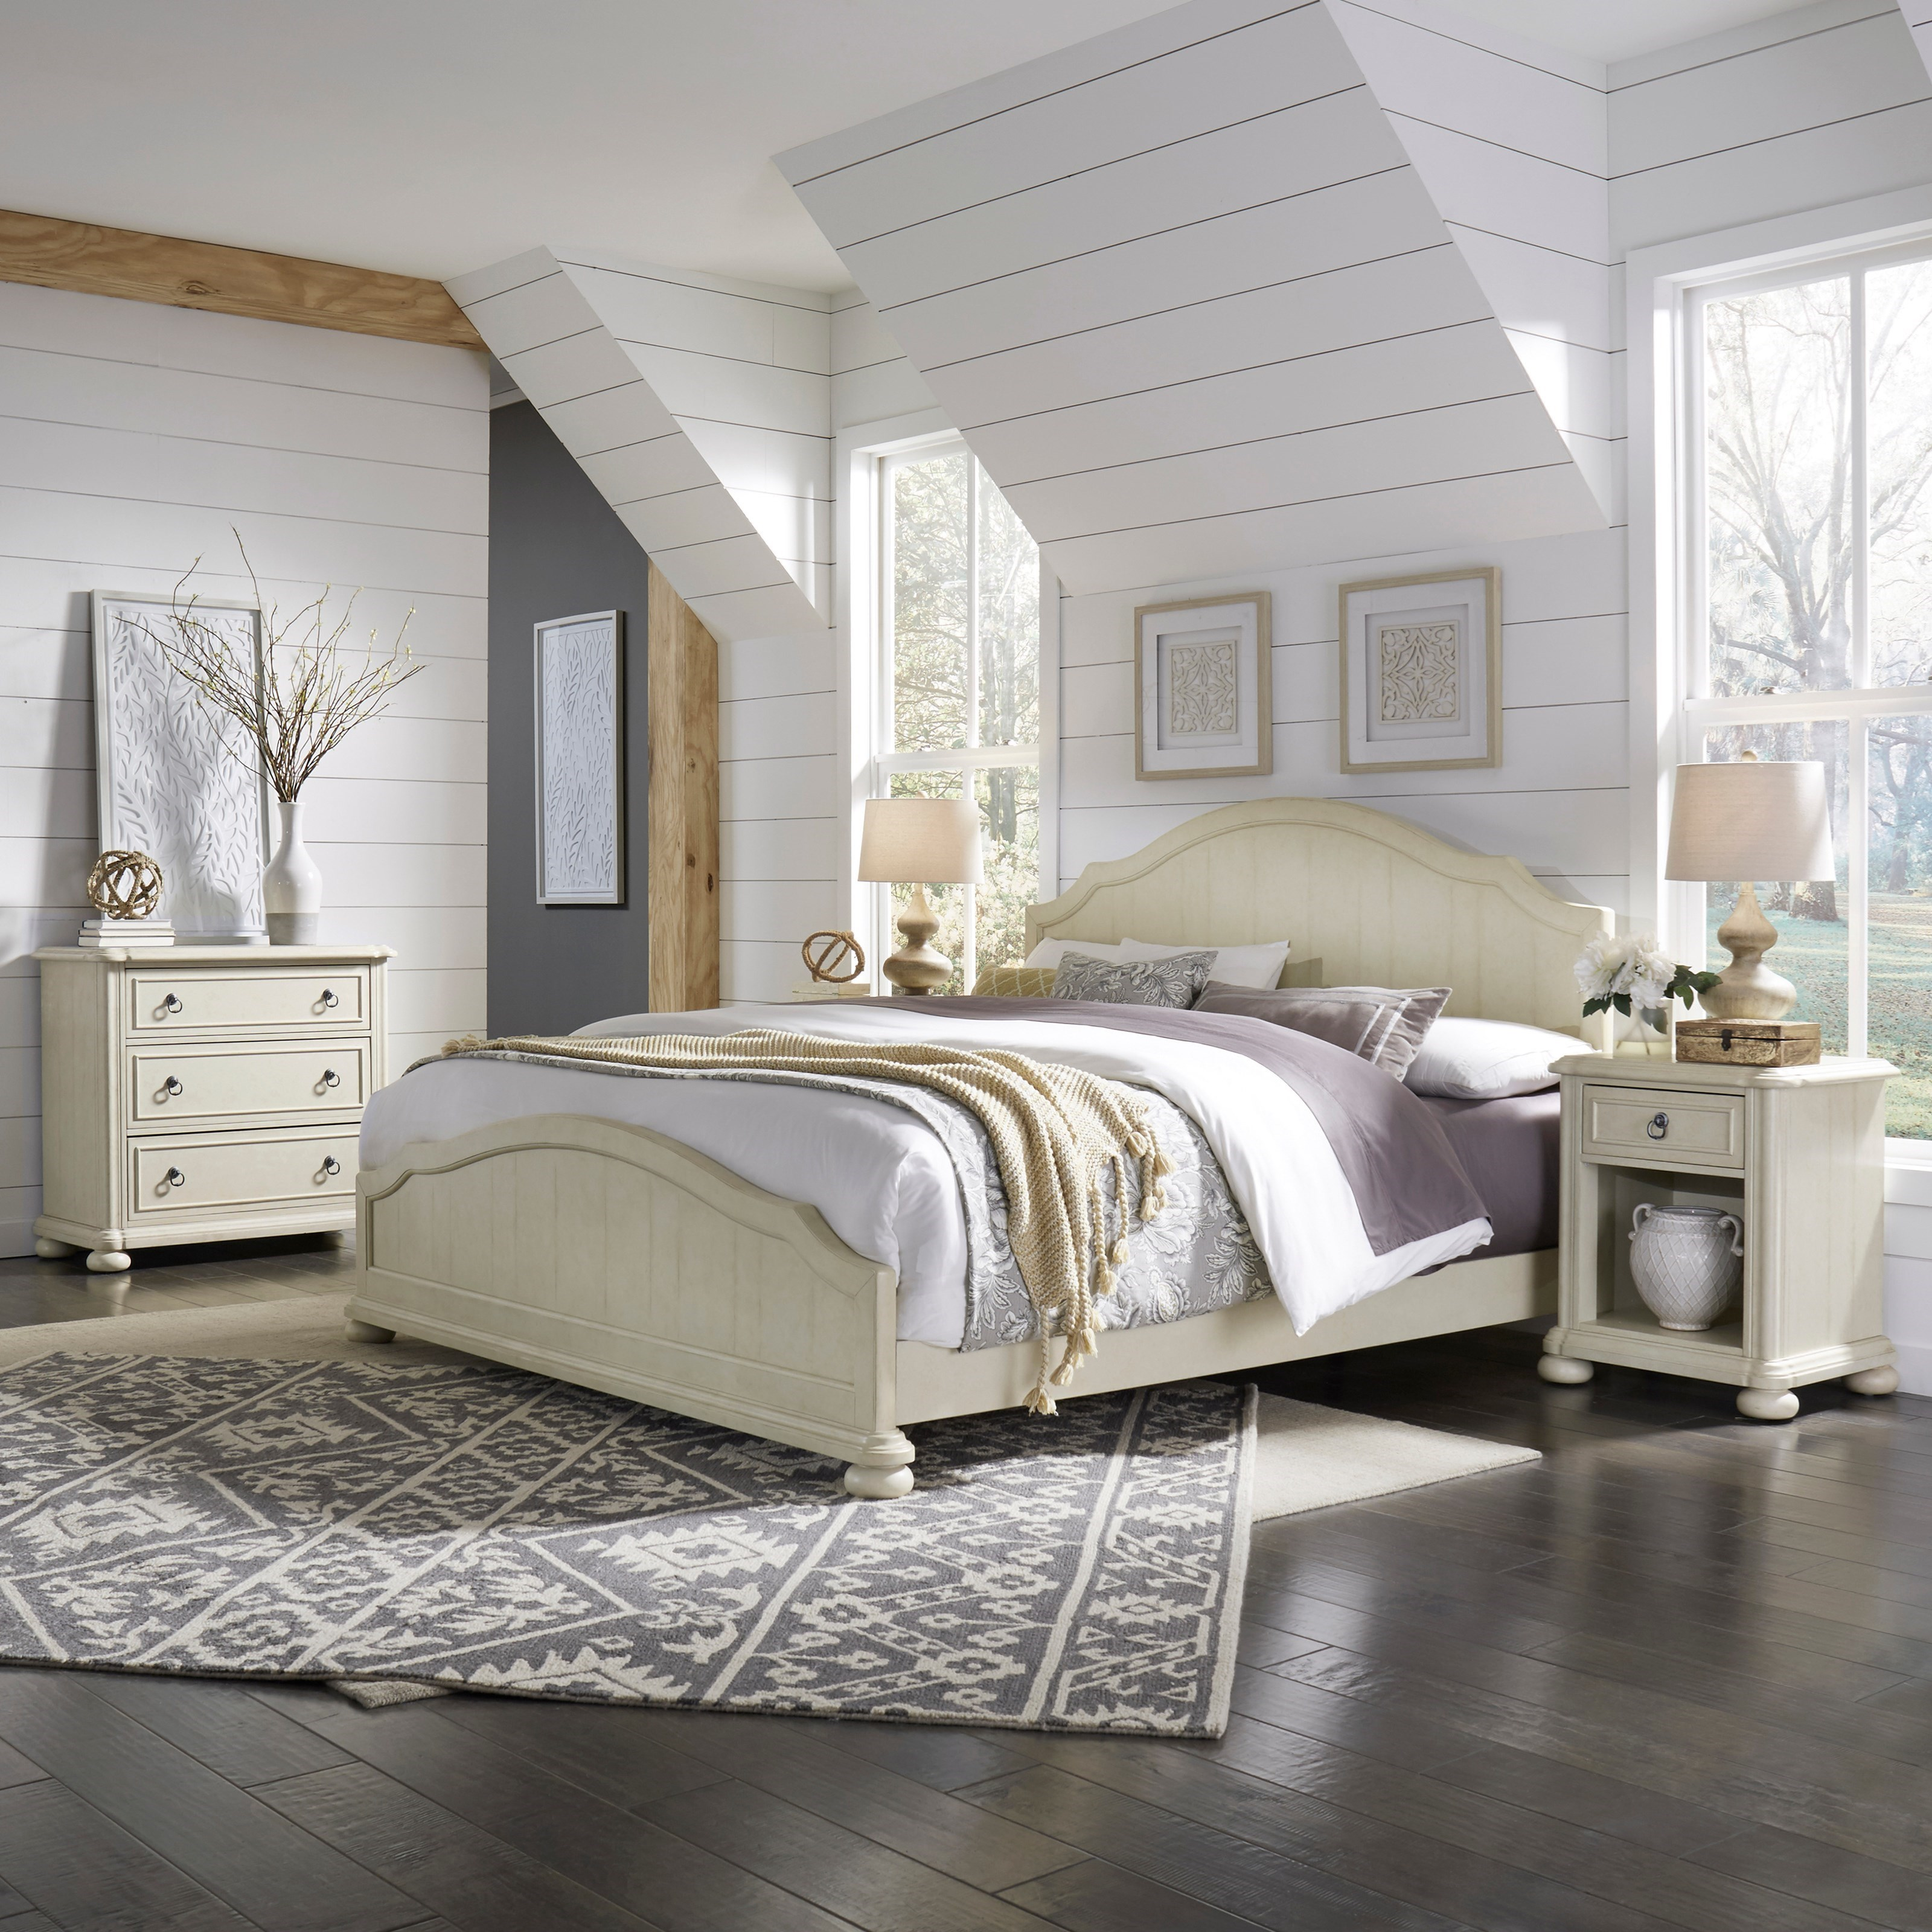 Provence King Bedroom Group by Homestyles at Godby Home Furnishings